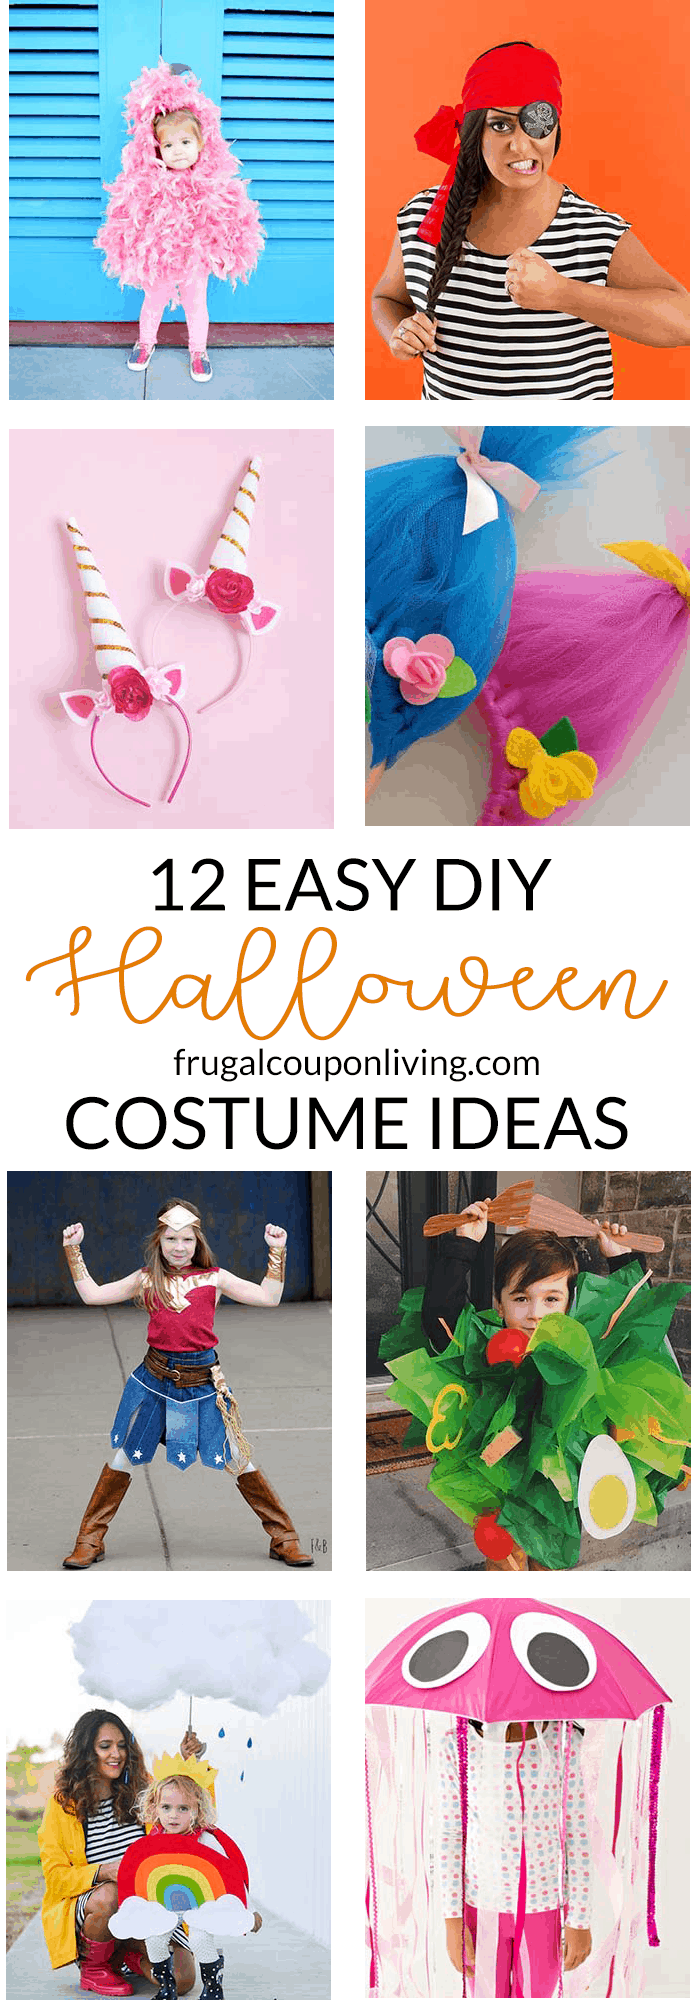 12 Easy DIY Halloween Costume Ideas